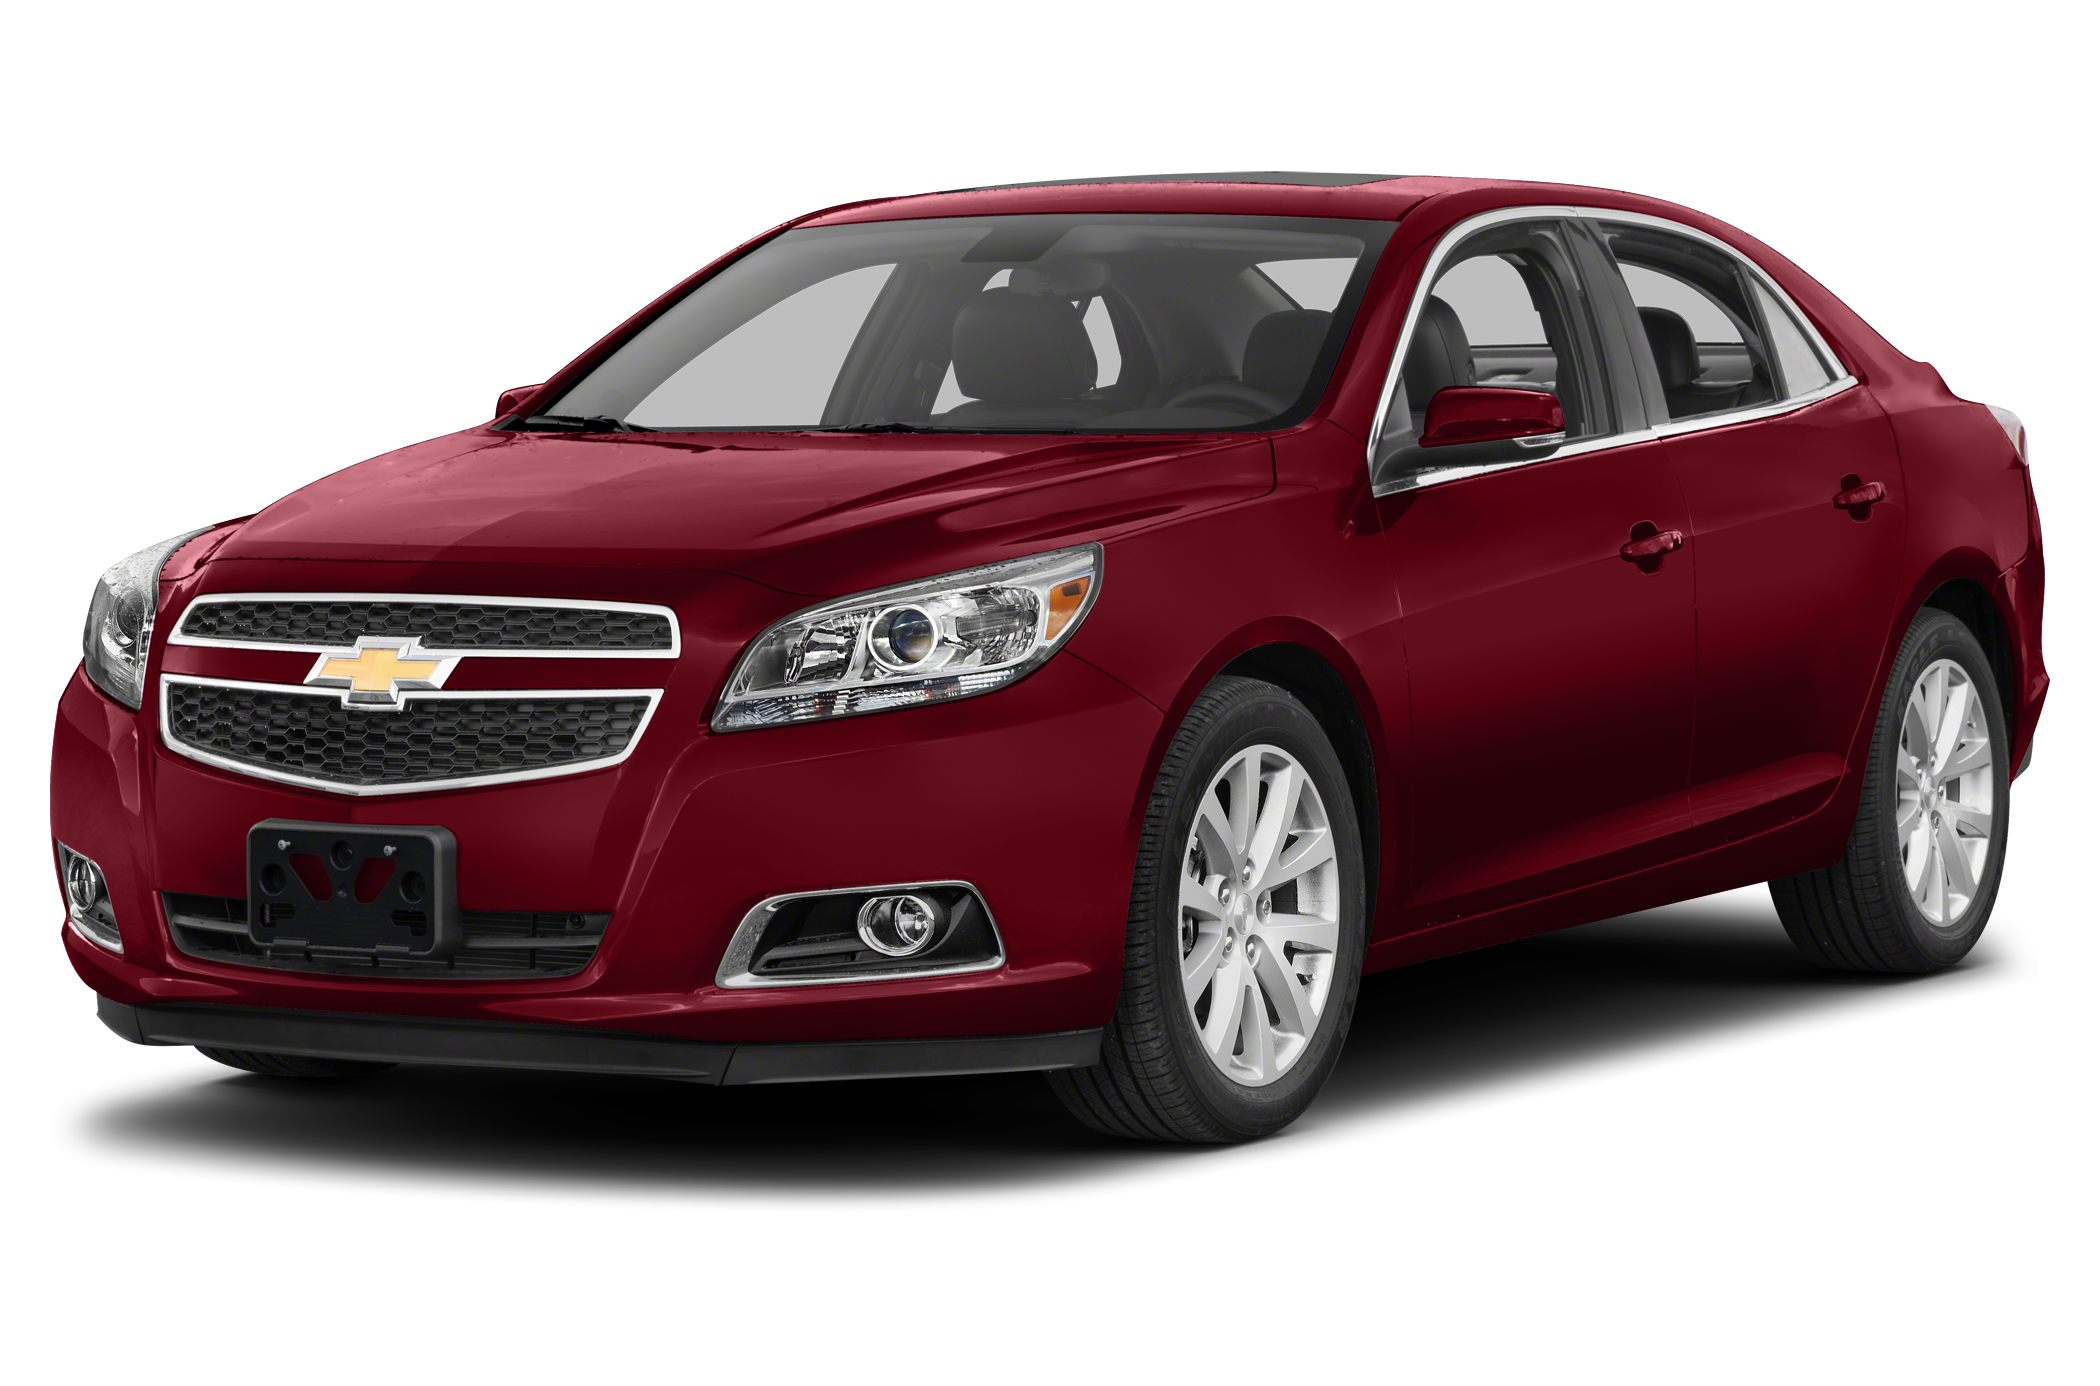 2013 Chevrolet Malibu 2LT Sedan for sale in Dallas for $16,491 with 38,714 miles